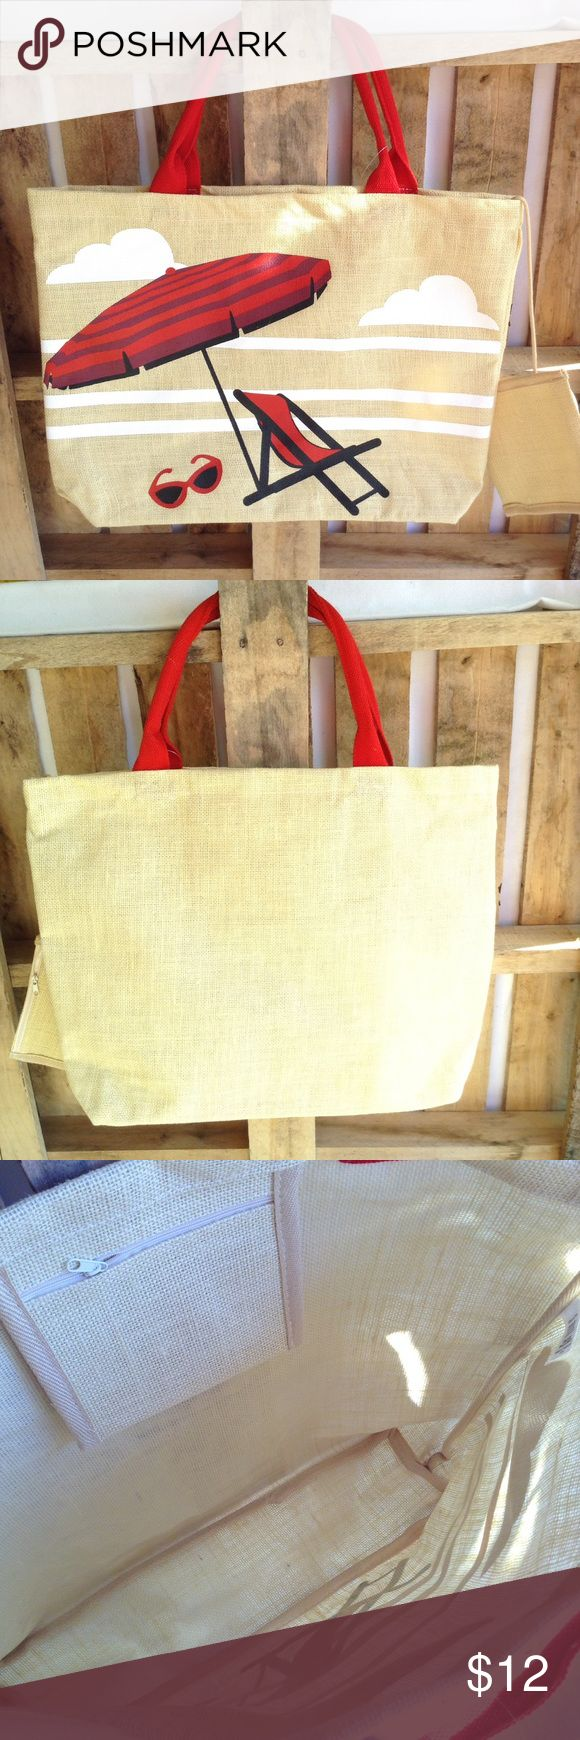 "Jute beach tote ☀️👙 Summer's coming!! 👏🏻☀️🏊🏻 Tote has inside and attached zippered pockets. The attached pocket is 6 x 6. Tote is 16"" tall, 21"" wide and 4.5"" wide bottom, and no worries with wet items! tote and pockets have plastic coating! 👍🏻 Bags Totes"